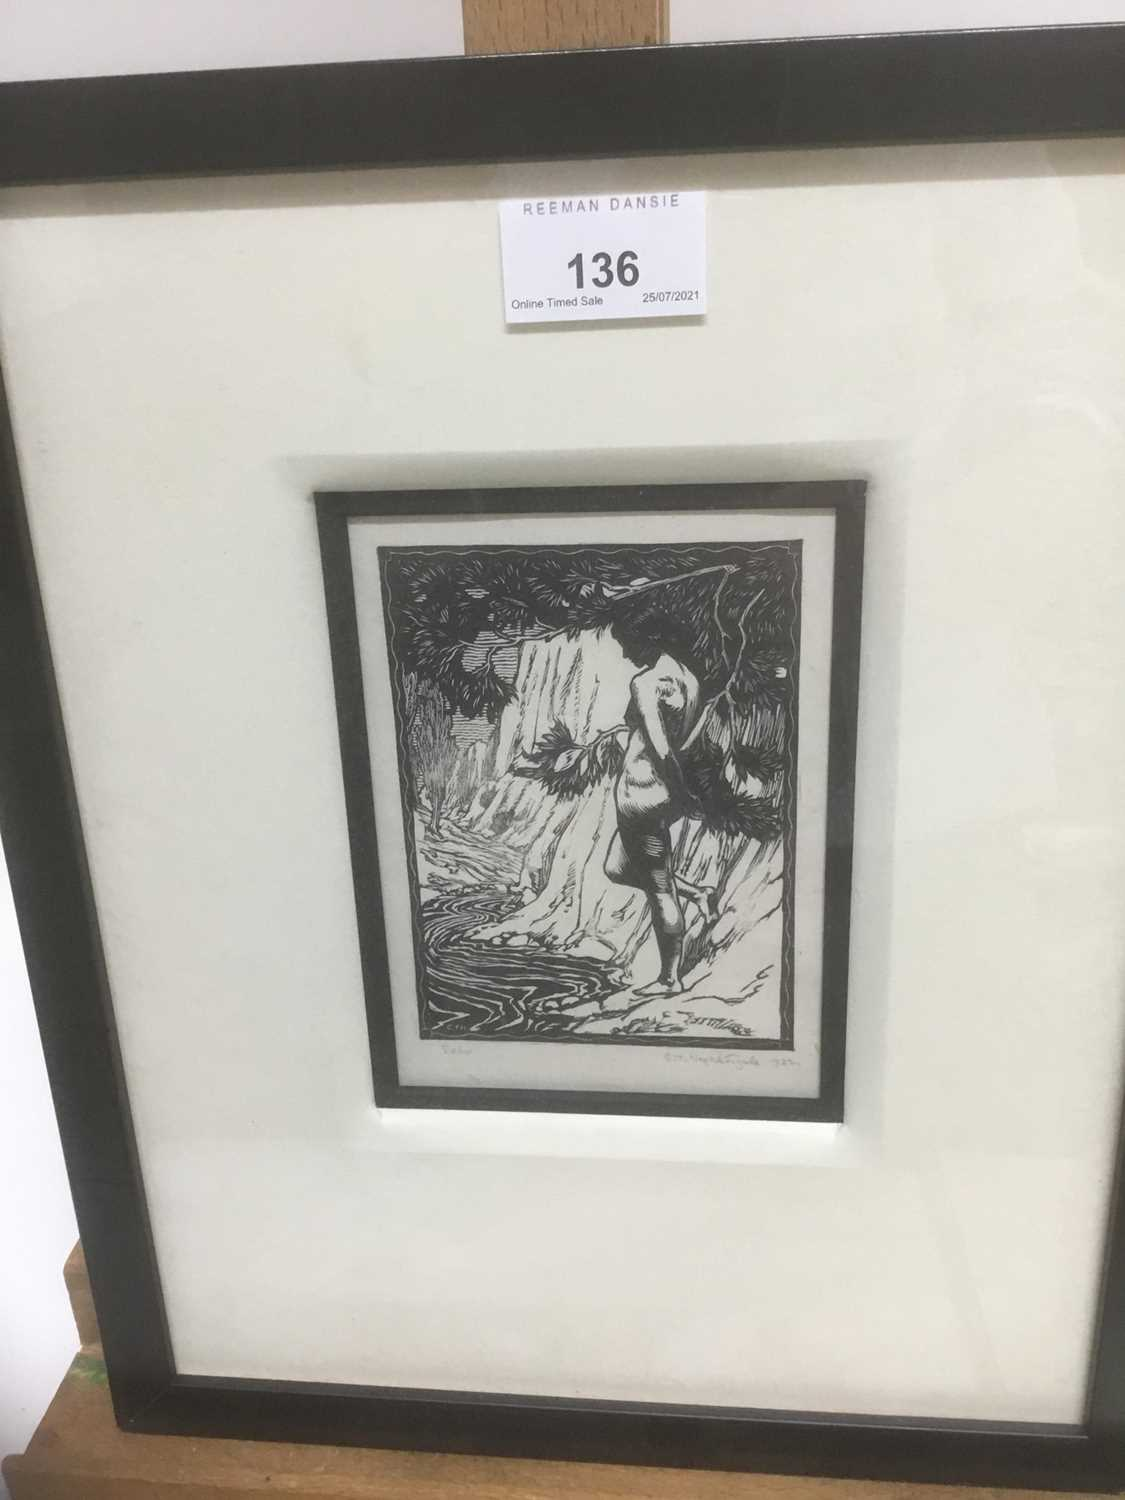 Charles Thrupp Nightingale (1878-c.1939) signed woodcut - Echo, titled, signed and dated 1922 in pen